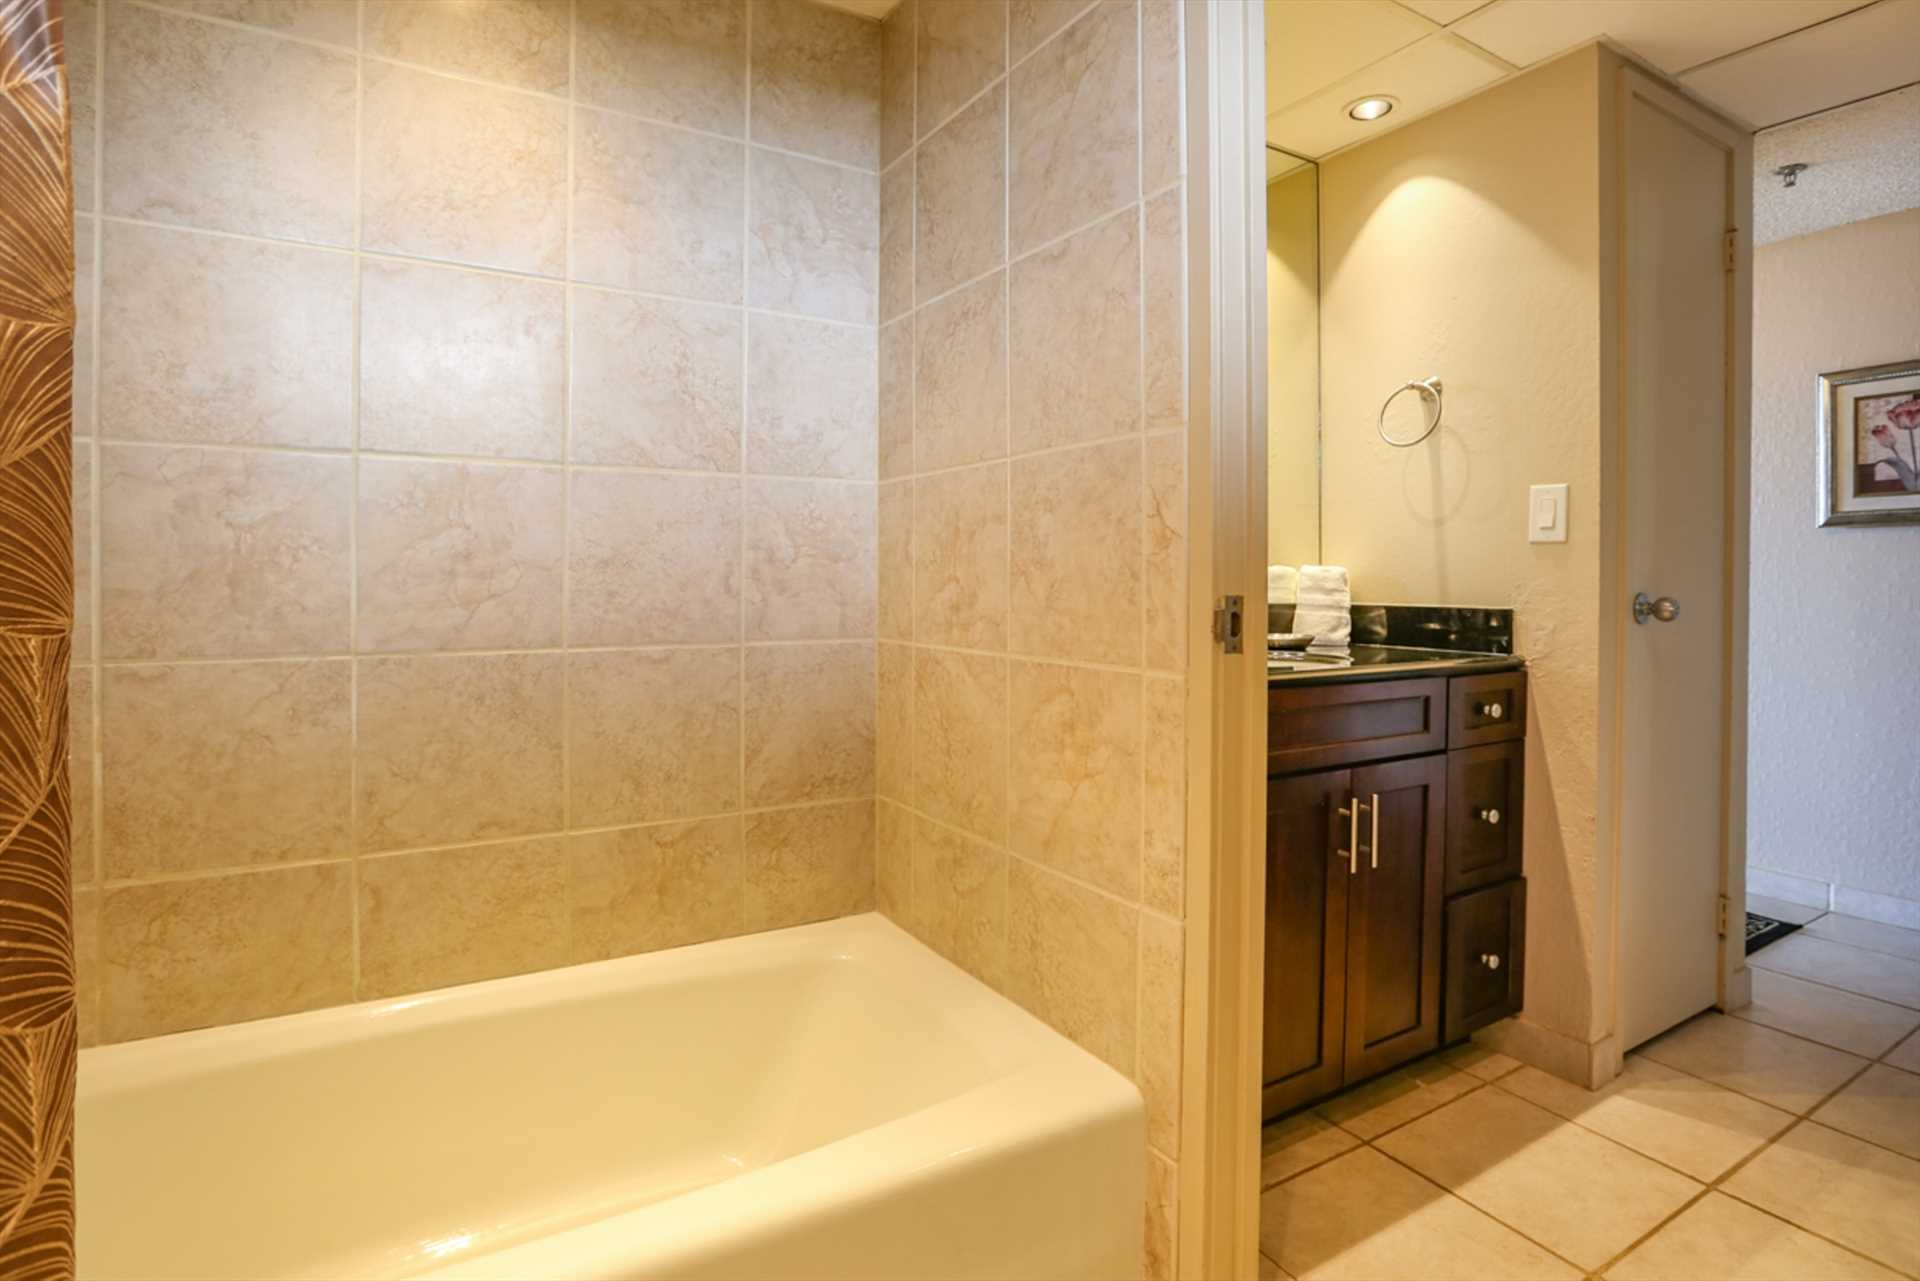 Shower and bath combination